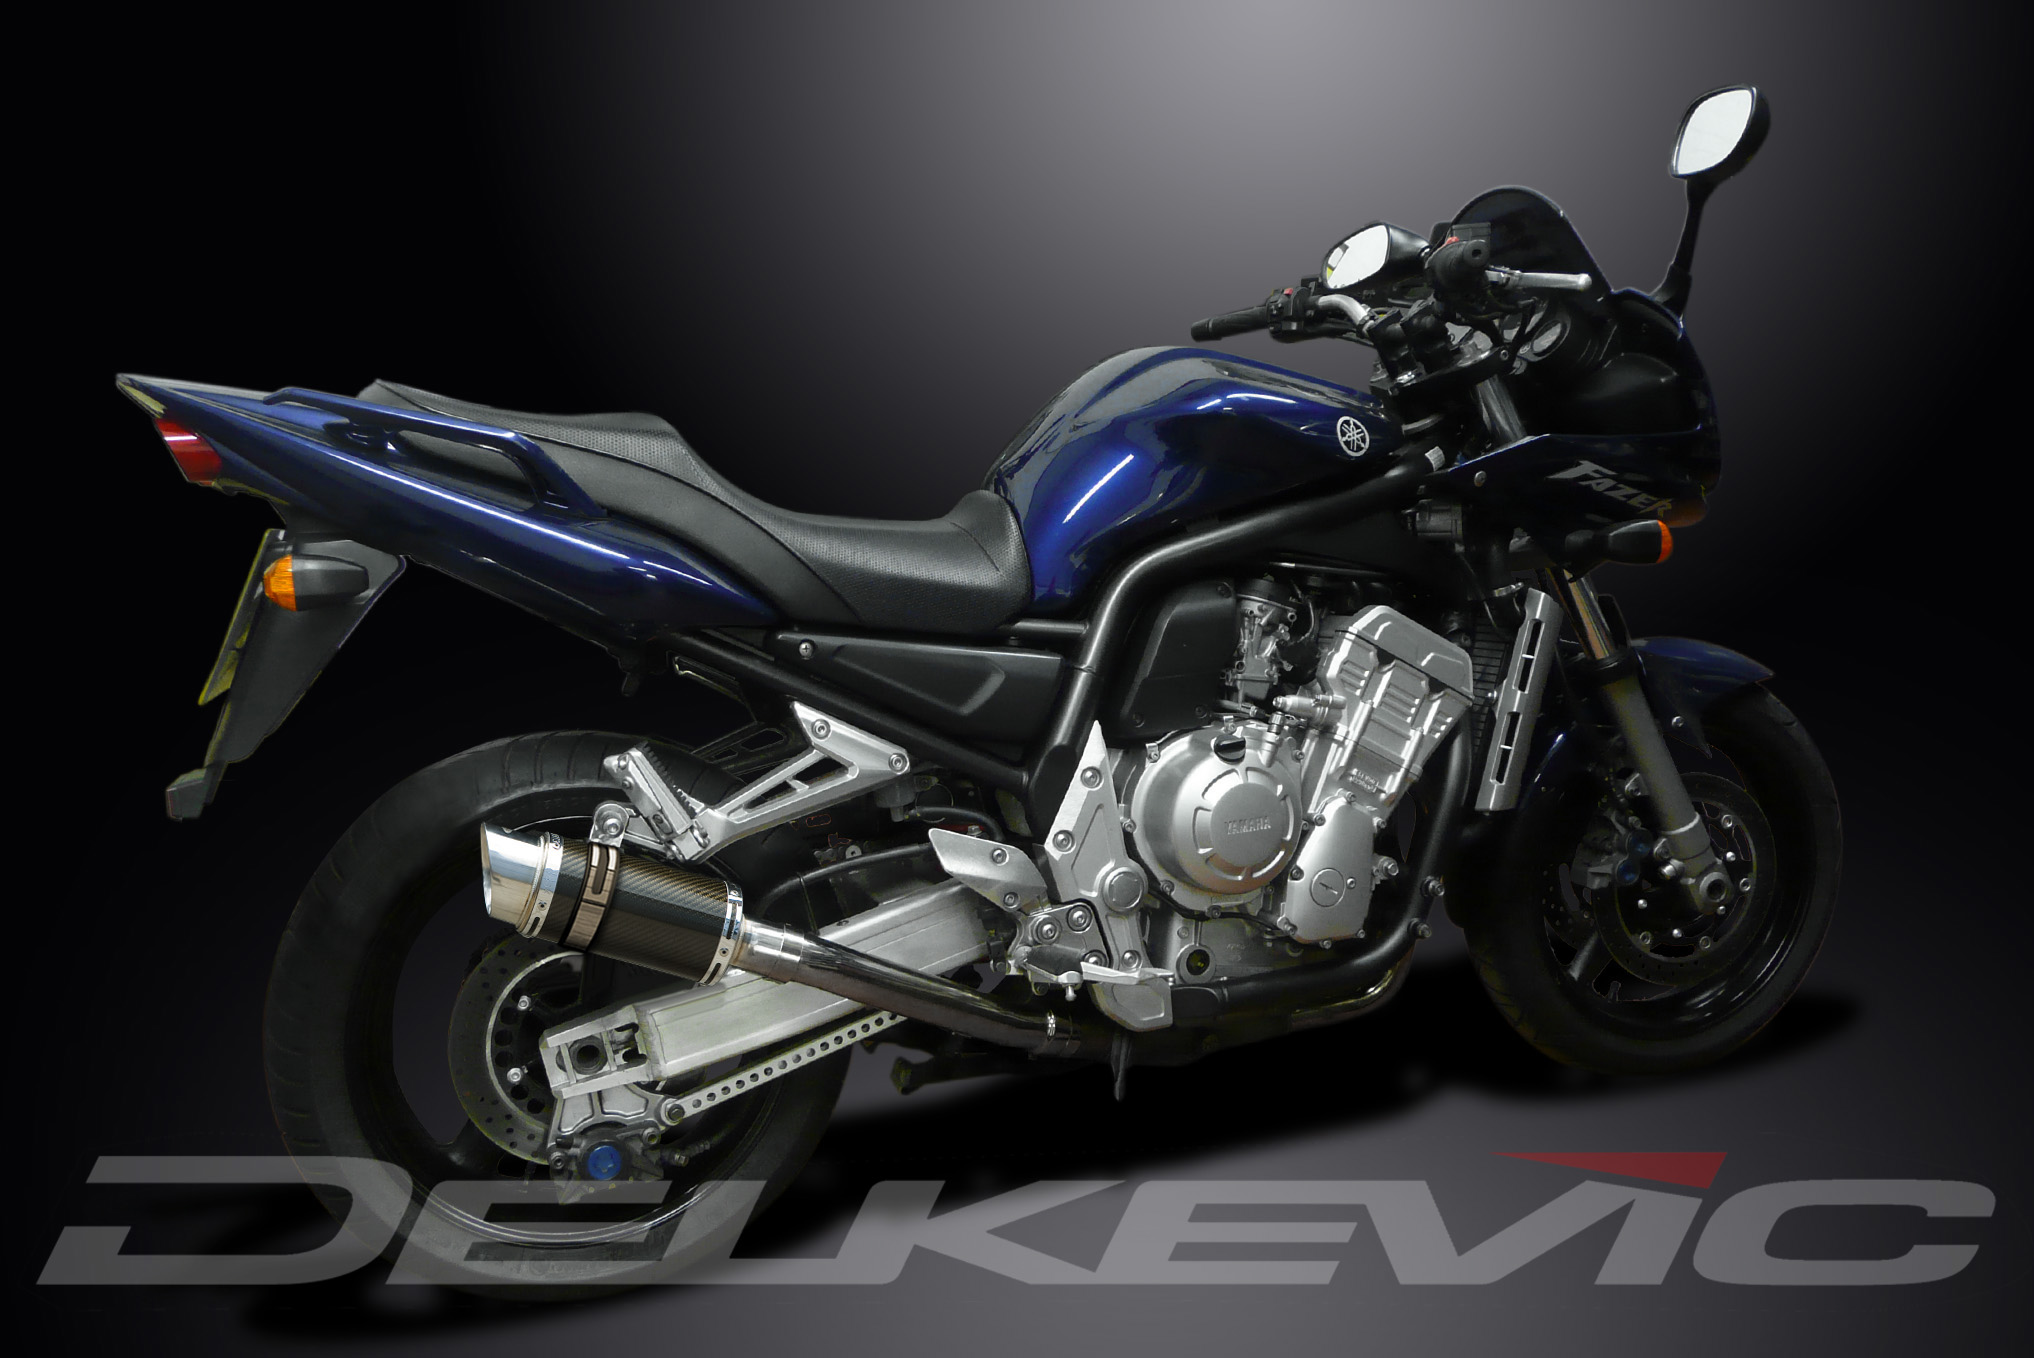 Глушитель DELKEVIC, Yamaha FZS1000 FZ-1 2001-2005 carbon 200mm